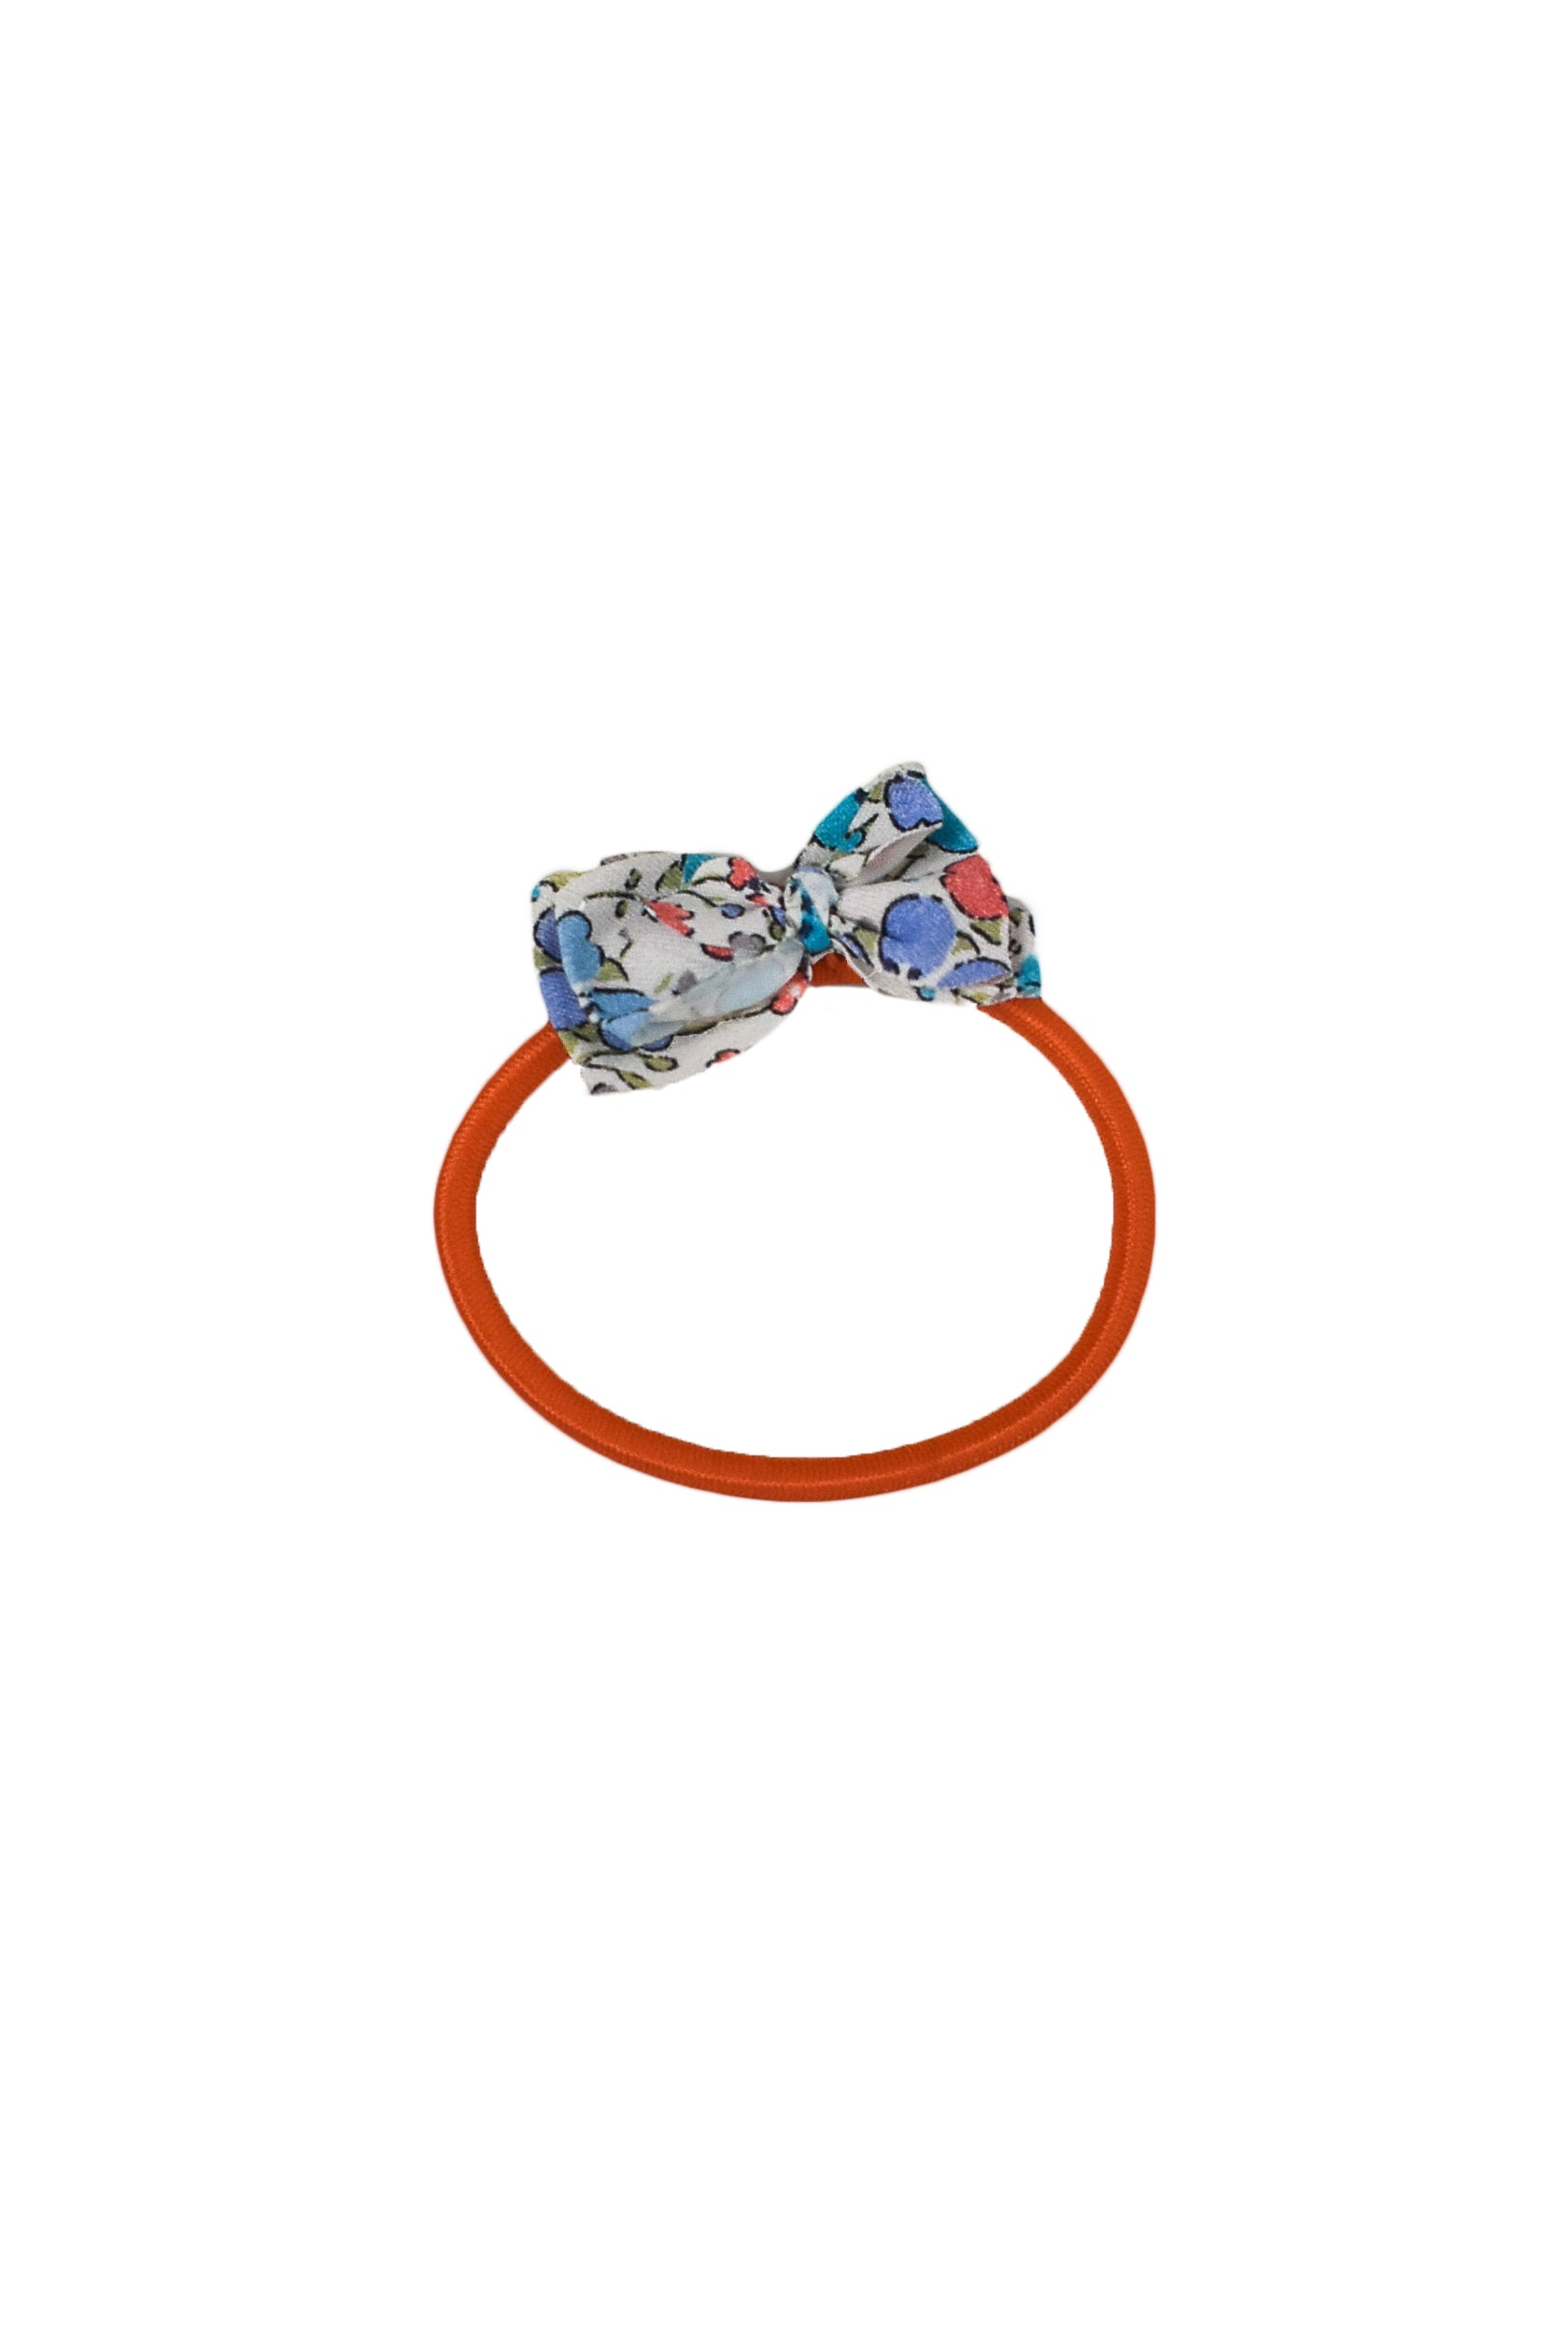 10006852 Chateau de Sable Kids~ Hair Elastic O/S at Retykle